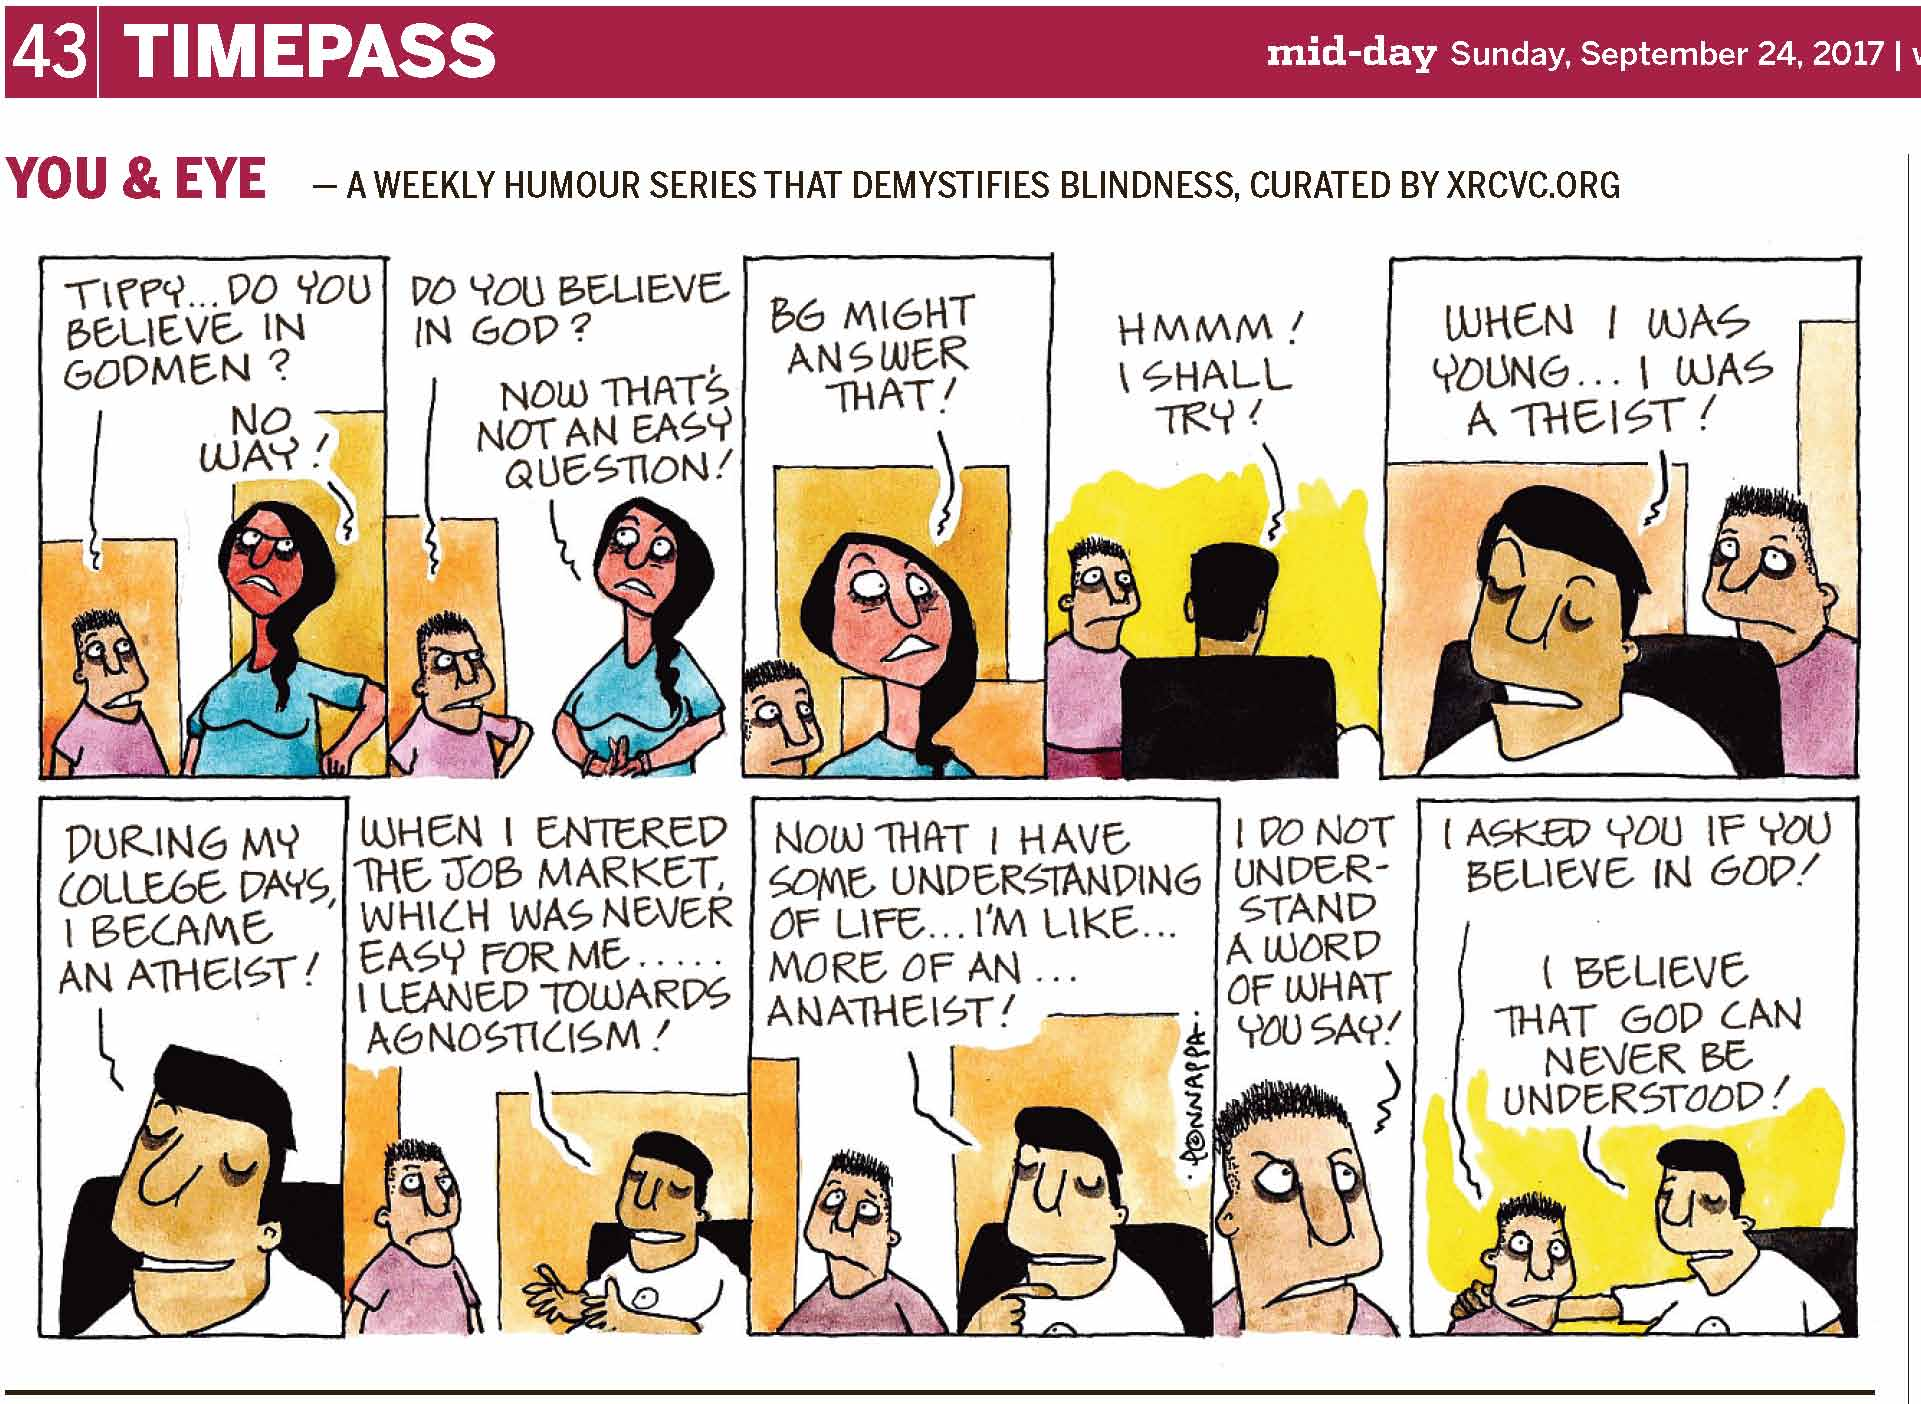 (top-left) 43 | TIMEPASS (top-right) mid-day Sunday, September 24, 2017 | YOU & EYE – A WEEKLY HUMOUR SERIES THAT DEMYSTIFIES BLINDNESS, CURATED BY XRCVC.ORG Image description: A cartoon strip with 10 frames… Frame 1: (Pintu looks at Tippy with his eyebrows raised enquiringly, while Tippy's face appears red with rage, as she rests her left hand on her hip.) Pintu: Tippy… Do you believe in godmen? Tippy: No way! Frame 2: (Pintu now has his left hand resting on his hip as he looks at Tippy with lowered eyebrows, while Tippy's eyes point to her top-right as she seems to be contemplating.) Pintu: Do you believe in God? Tippy: Now that's not an easy question! Frame 3: (A close-up of Tippy with her eyebrows raised; she has now turned such that Pintu is behind her.) Tippy: BG might answer that! Frame 4: (BG is seen from the back, while seated on a black chair. Pintu stands and looks at him with wide-open eyes.) BG: Hmmm! I shall try! Frame 5: (A close-up of BG now seen from the front, while seated on the chair; Pintu stands behind and looks upwards.) BG: When I was young… I was a theist! Frame 6: (A close-up of BG smiling while seated on the chair.) BG: